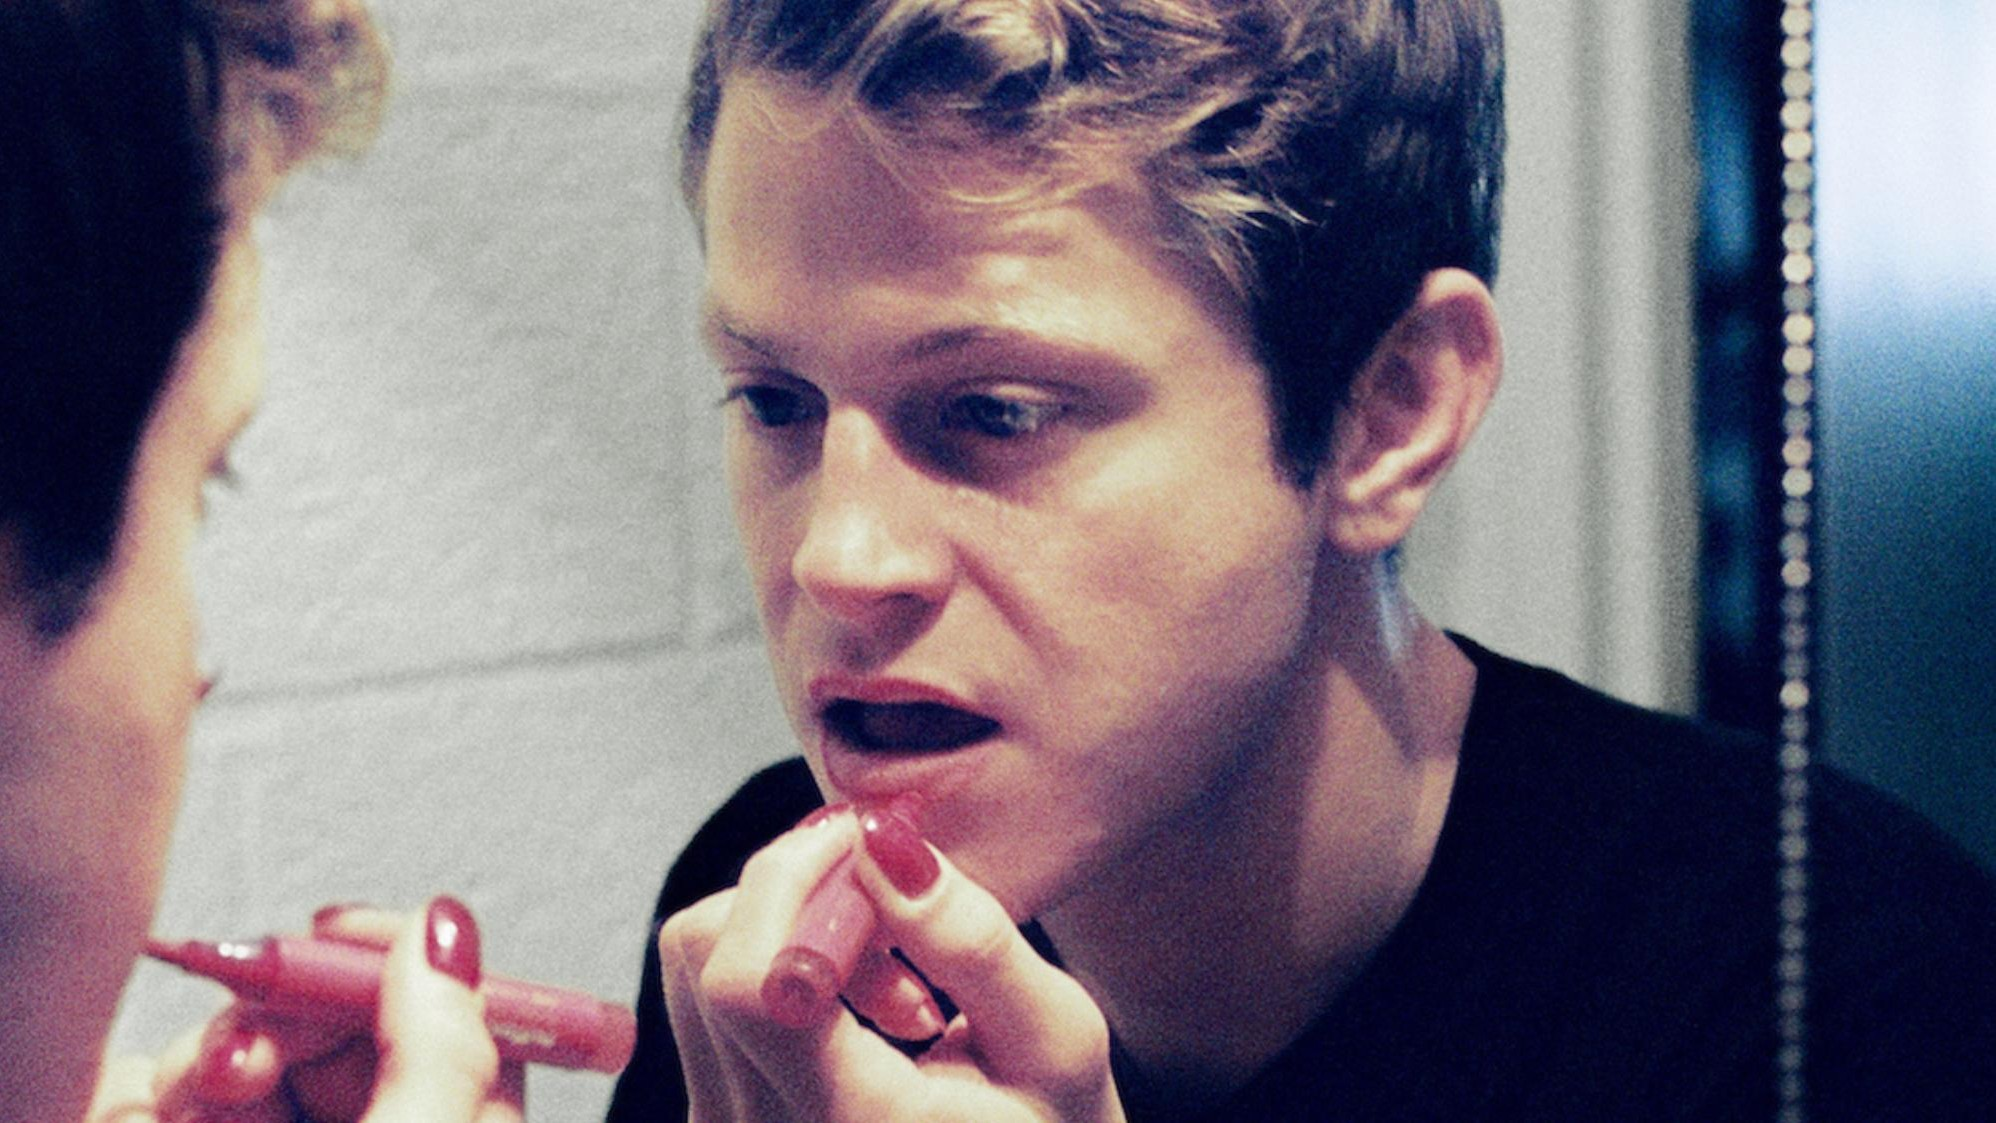 perfume genius covers elvis for prada's latest video